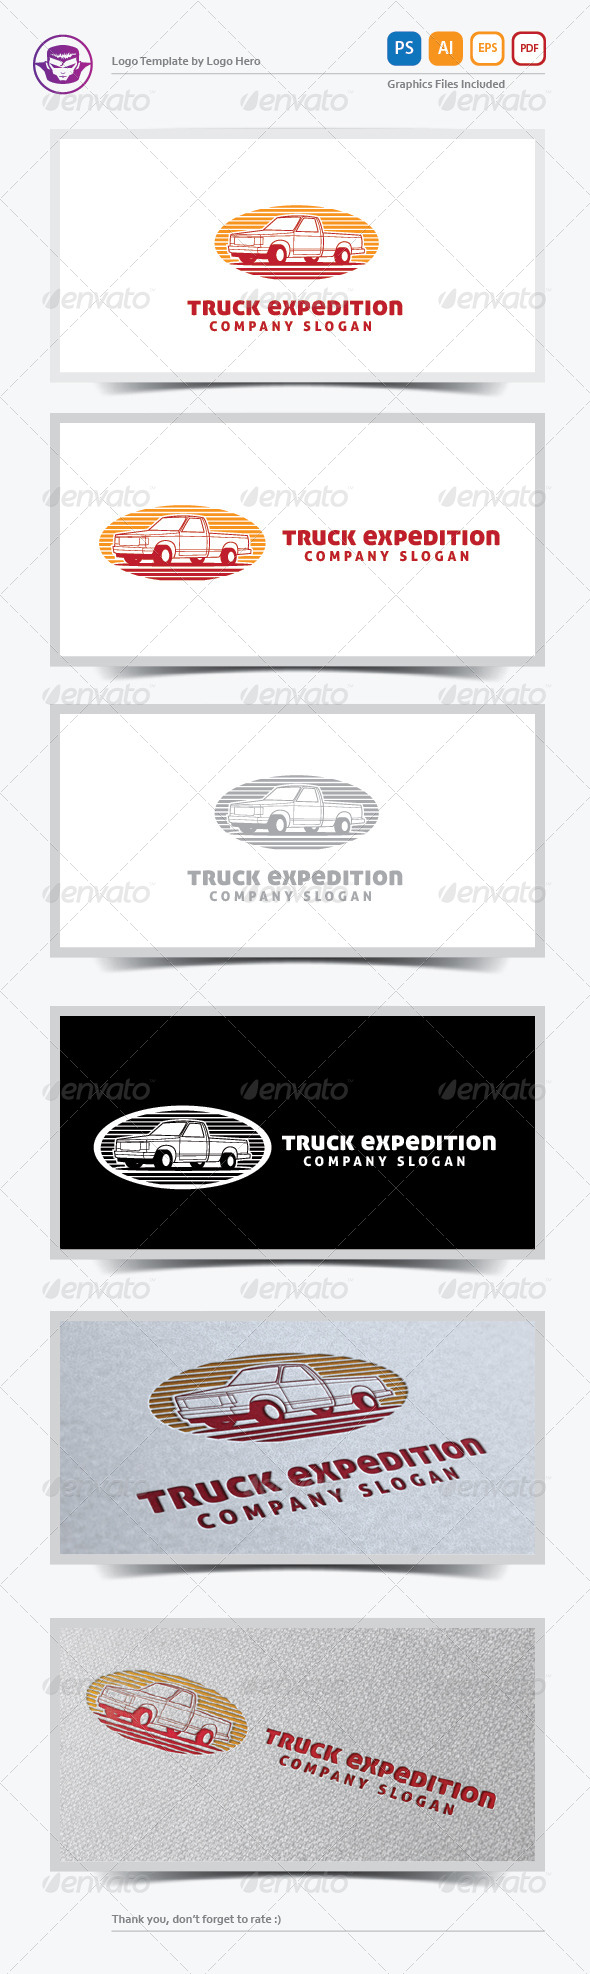 GraphicRiver Truck Expedition Logo Template 5733903